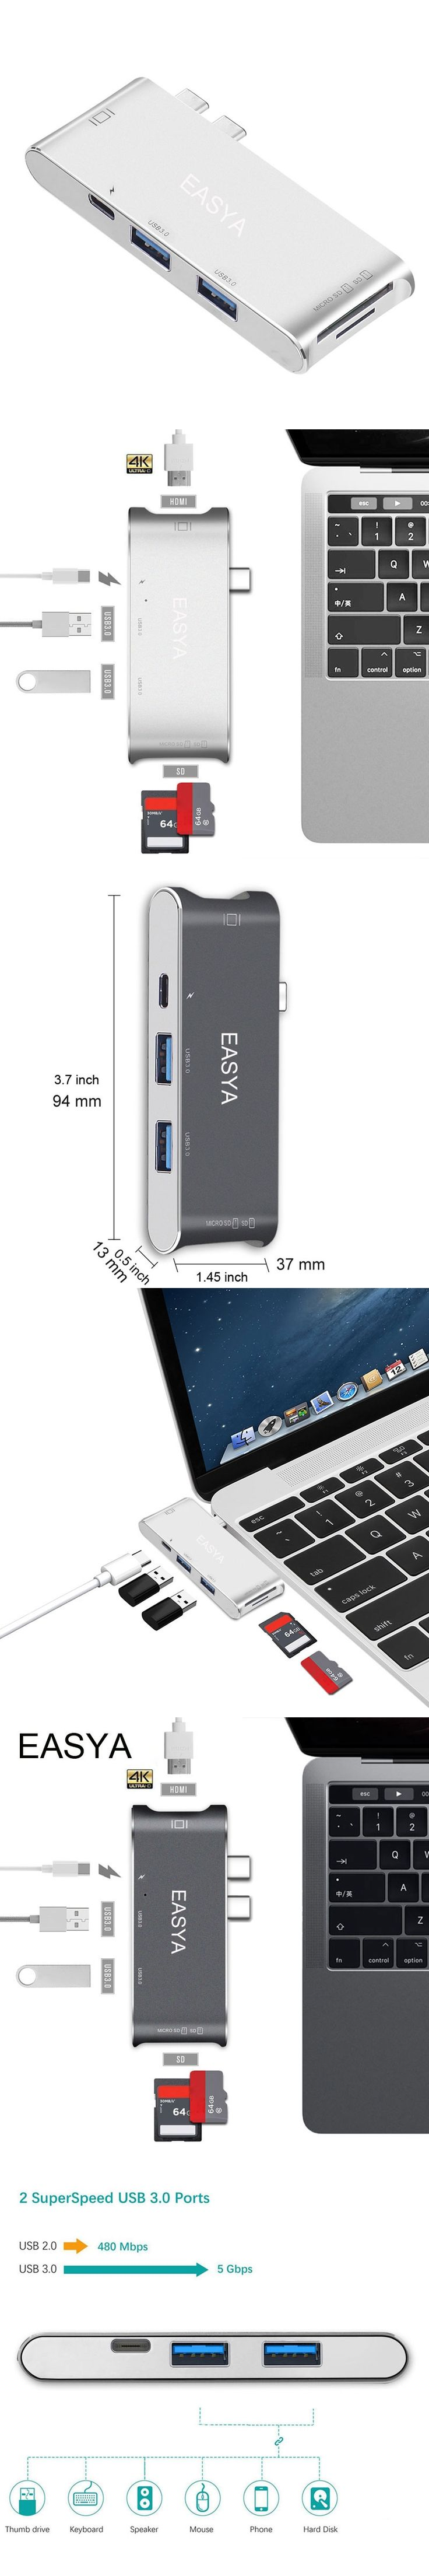 EASYA USB Type-C Hub To HDMI Adapter, Dock USB C Hub 3.0 Adapter, Thunderbolt3 Combo with SD Slot for MacBook Pro 2016 2017